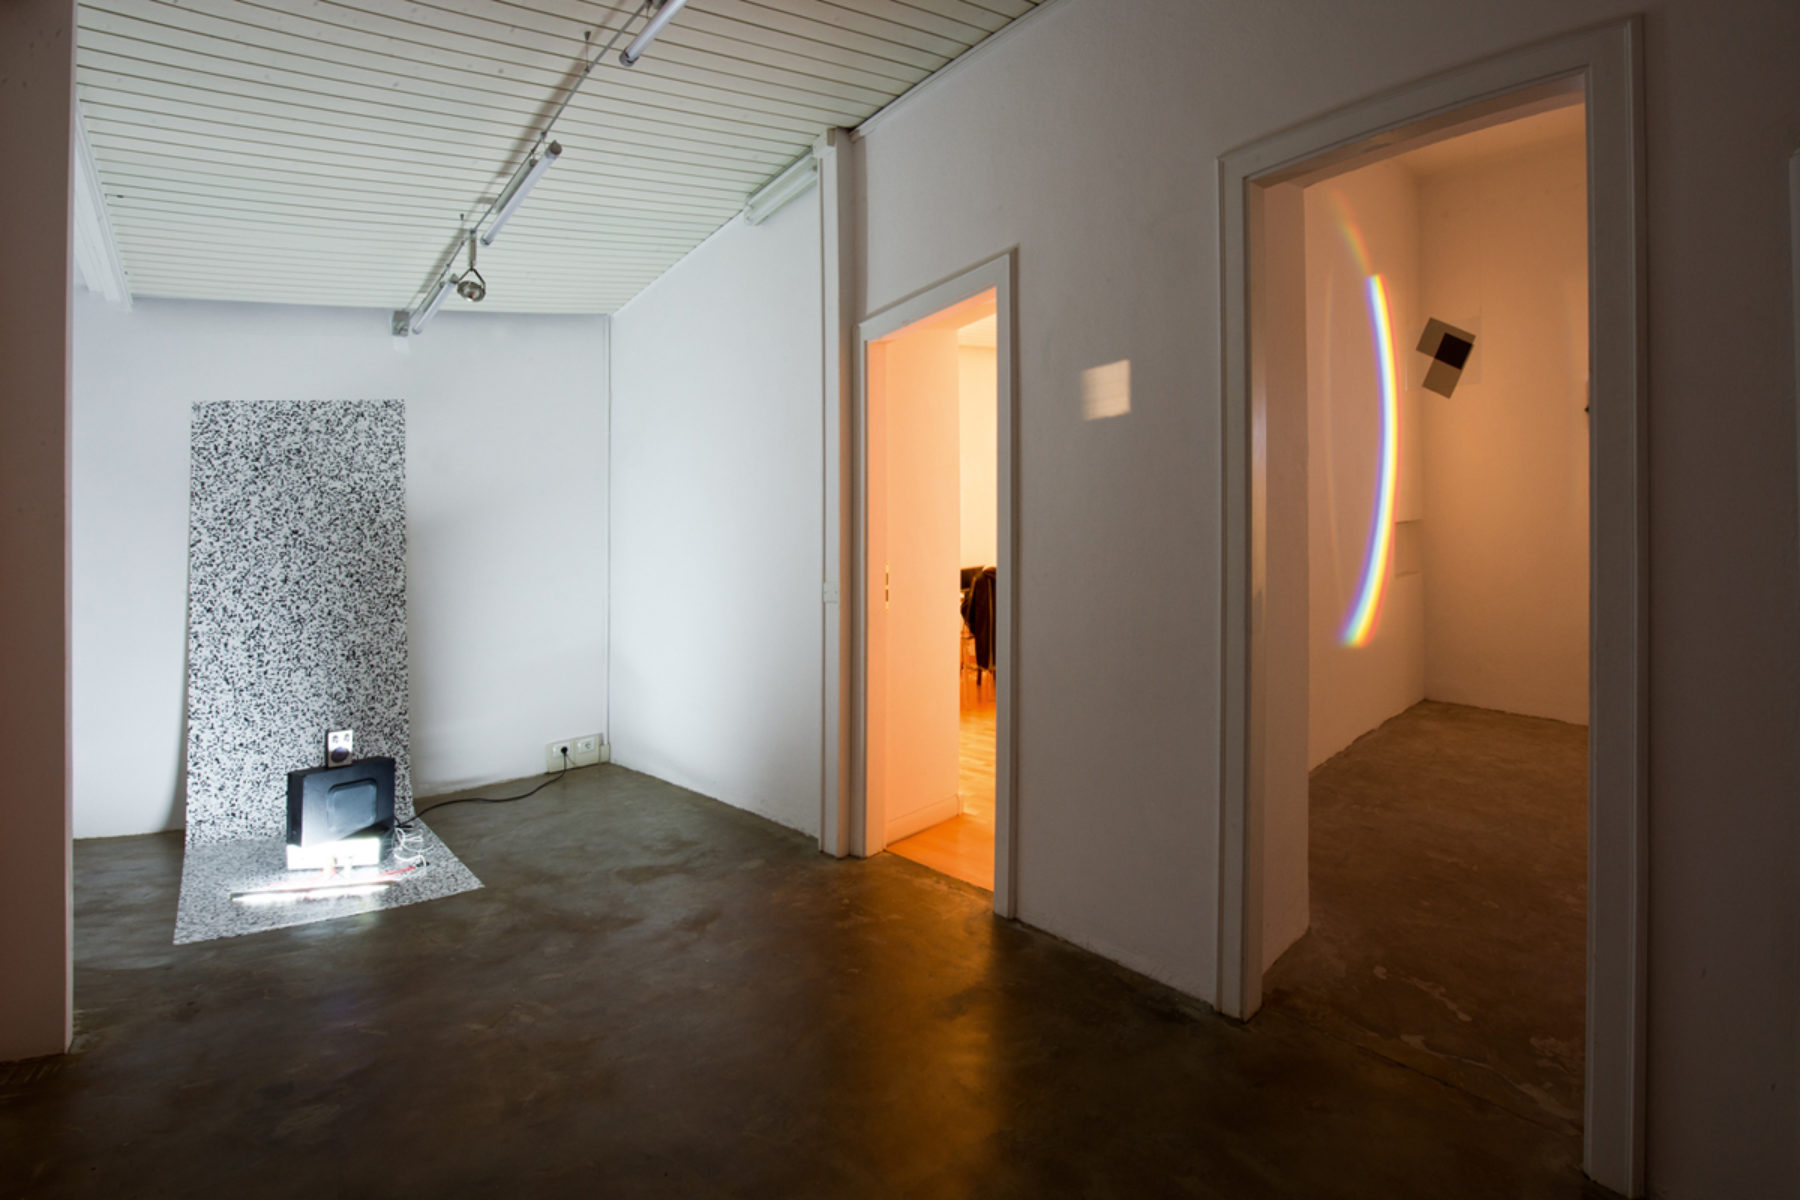 Richard Loskot, Open System, 2012, show view